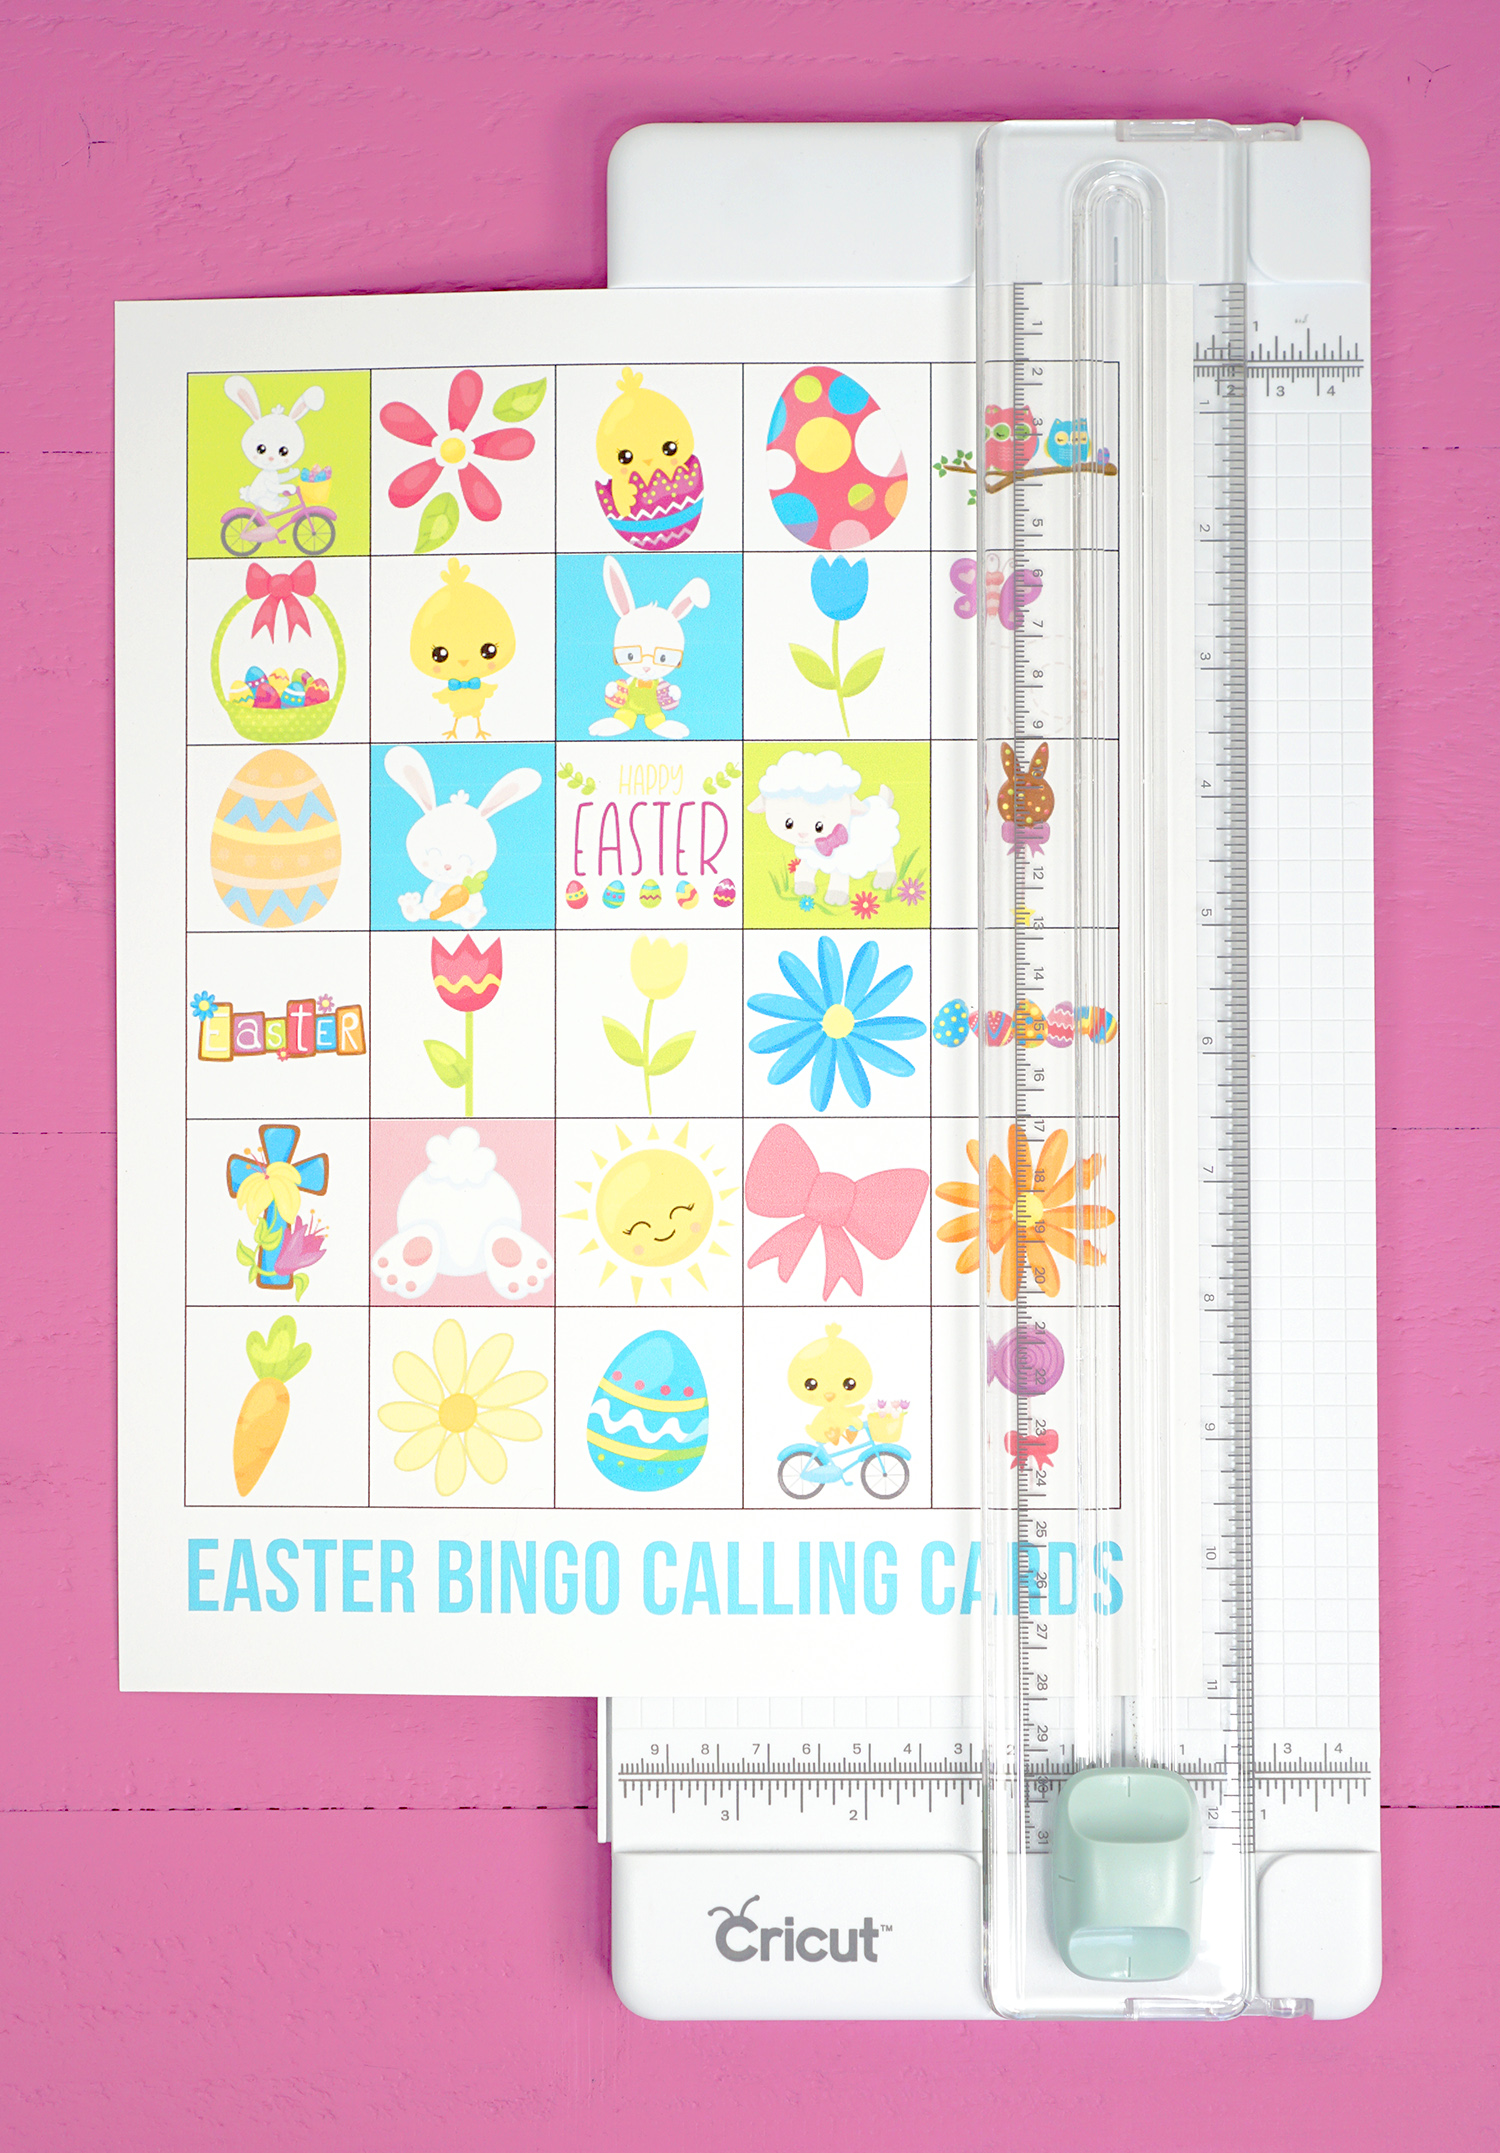 photo relating to Printable Bingo Calling Cards identified as Totally free Printable Easter Bingo Match Playing cards - Joy is Do-it-yourself